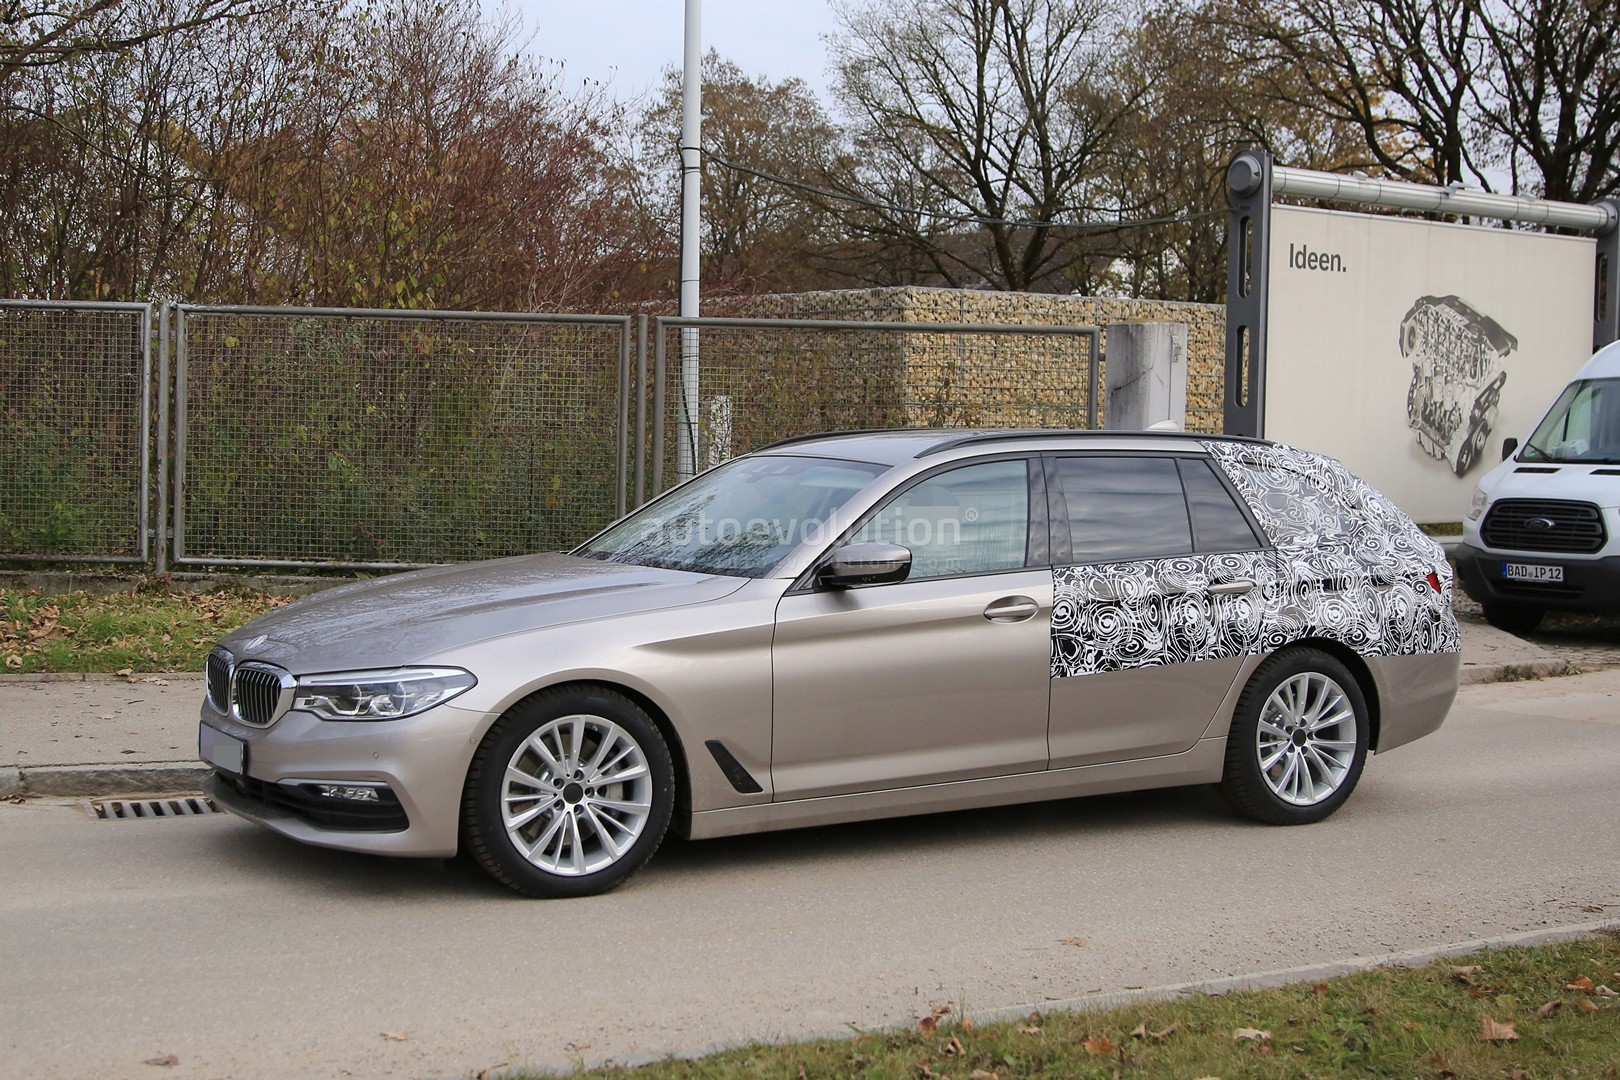 2016 - [BMW] Série 5 Berline & Touring [G30/G31] - Page 26 2017-bmw-5-series-touring-sheds-camo-likely-to-debut-in-geneva_3